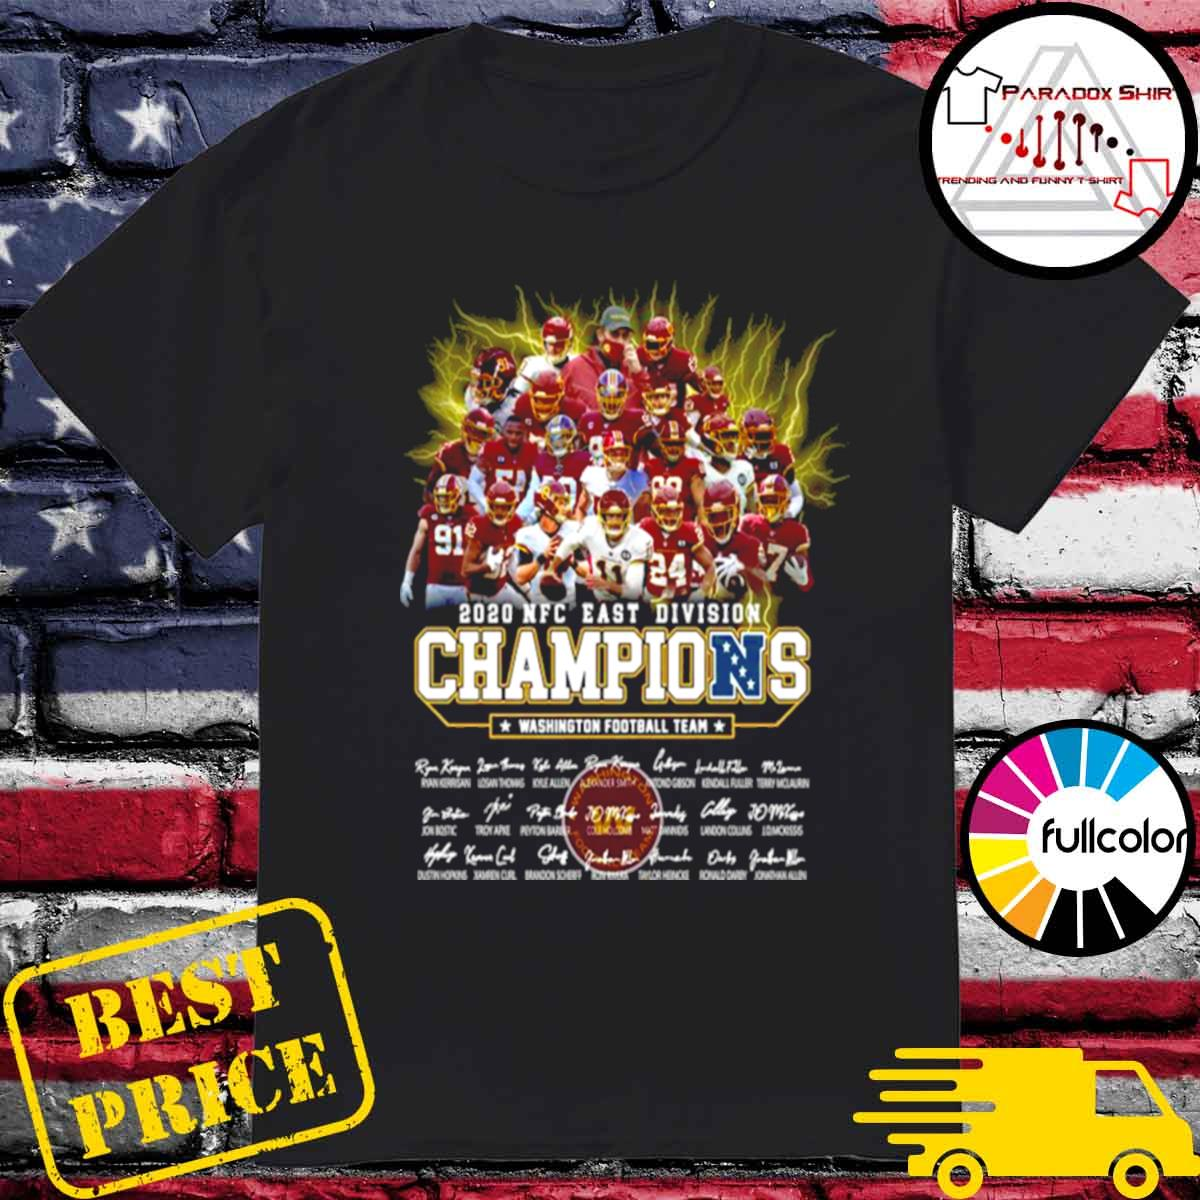 2020 Nfc East Division Champions Washington Football Team Signatures shirt